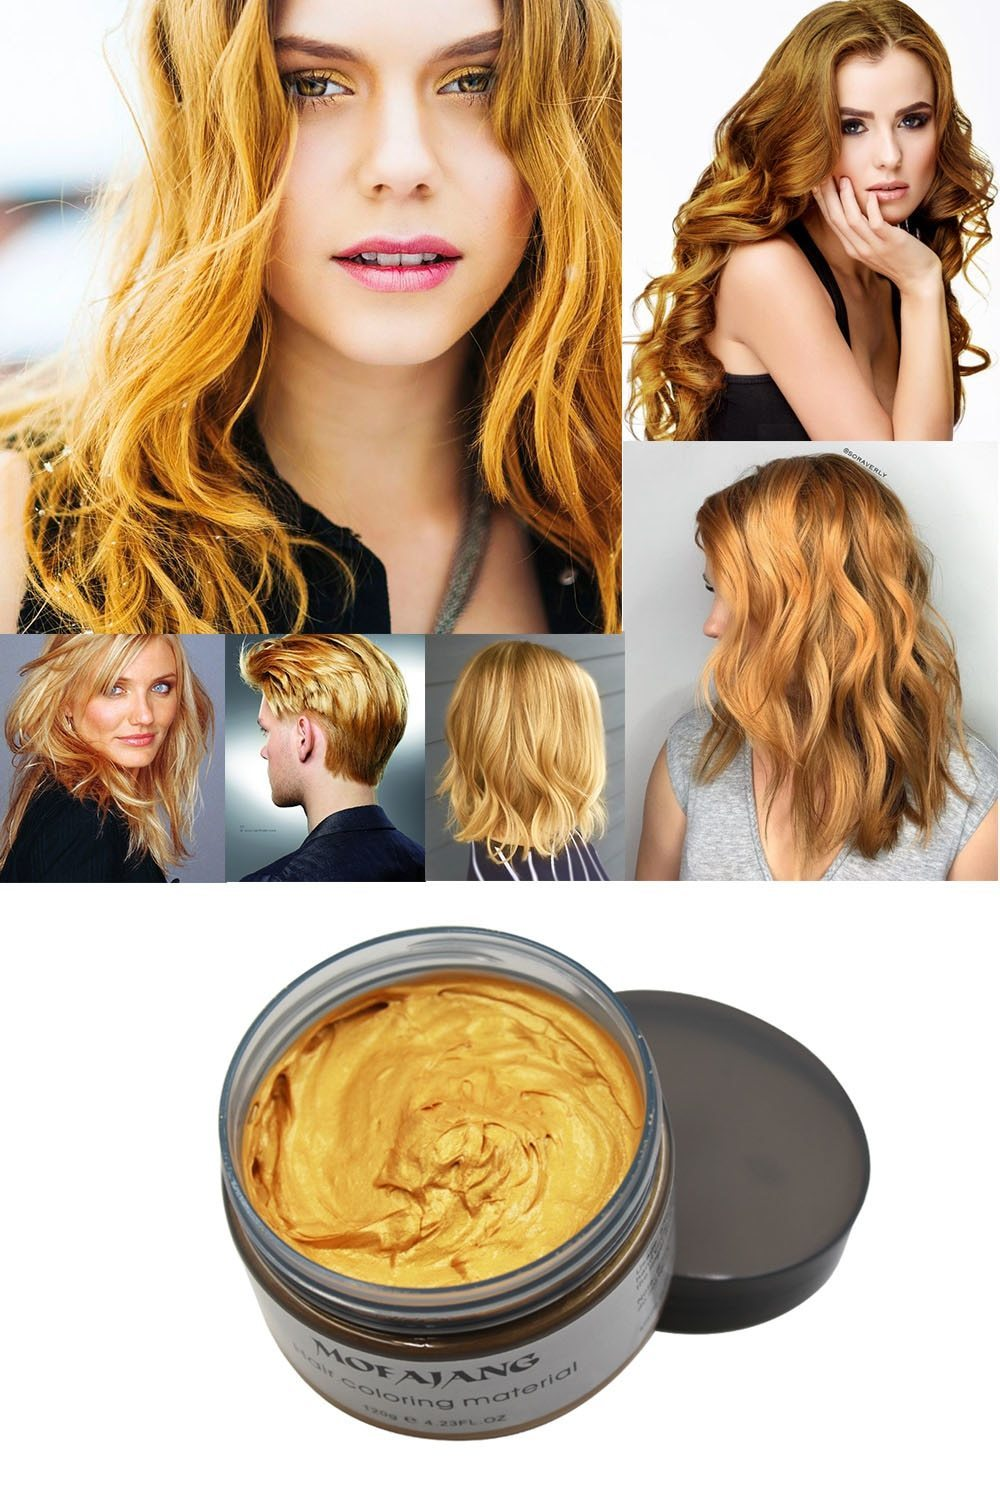 Hair Color Wax - My Beauty Mantra